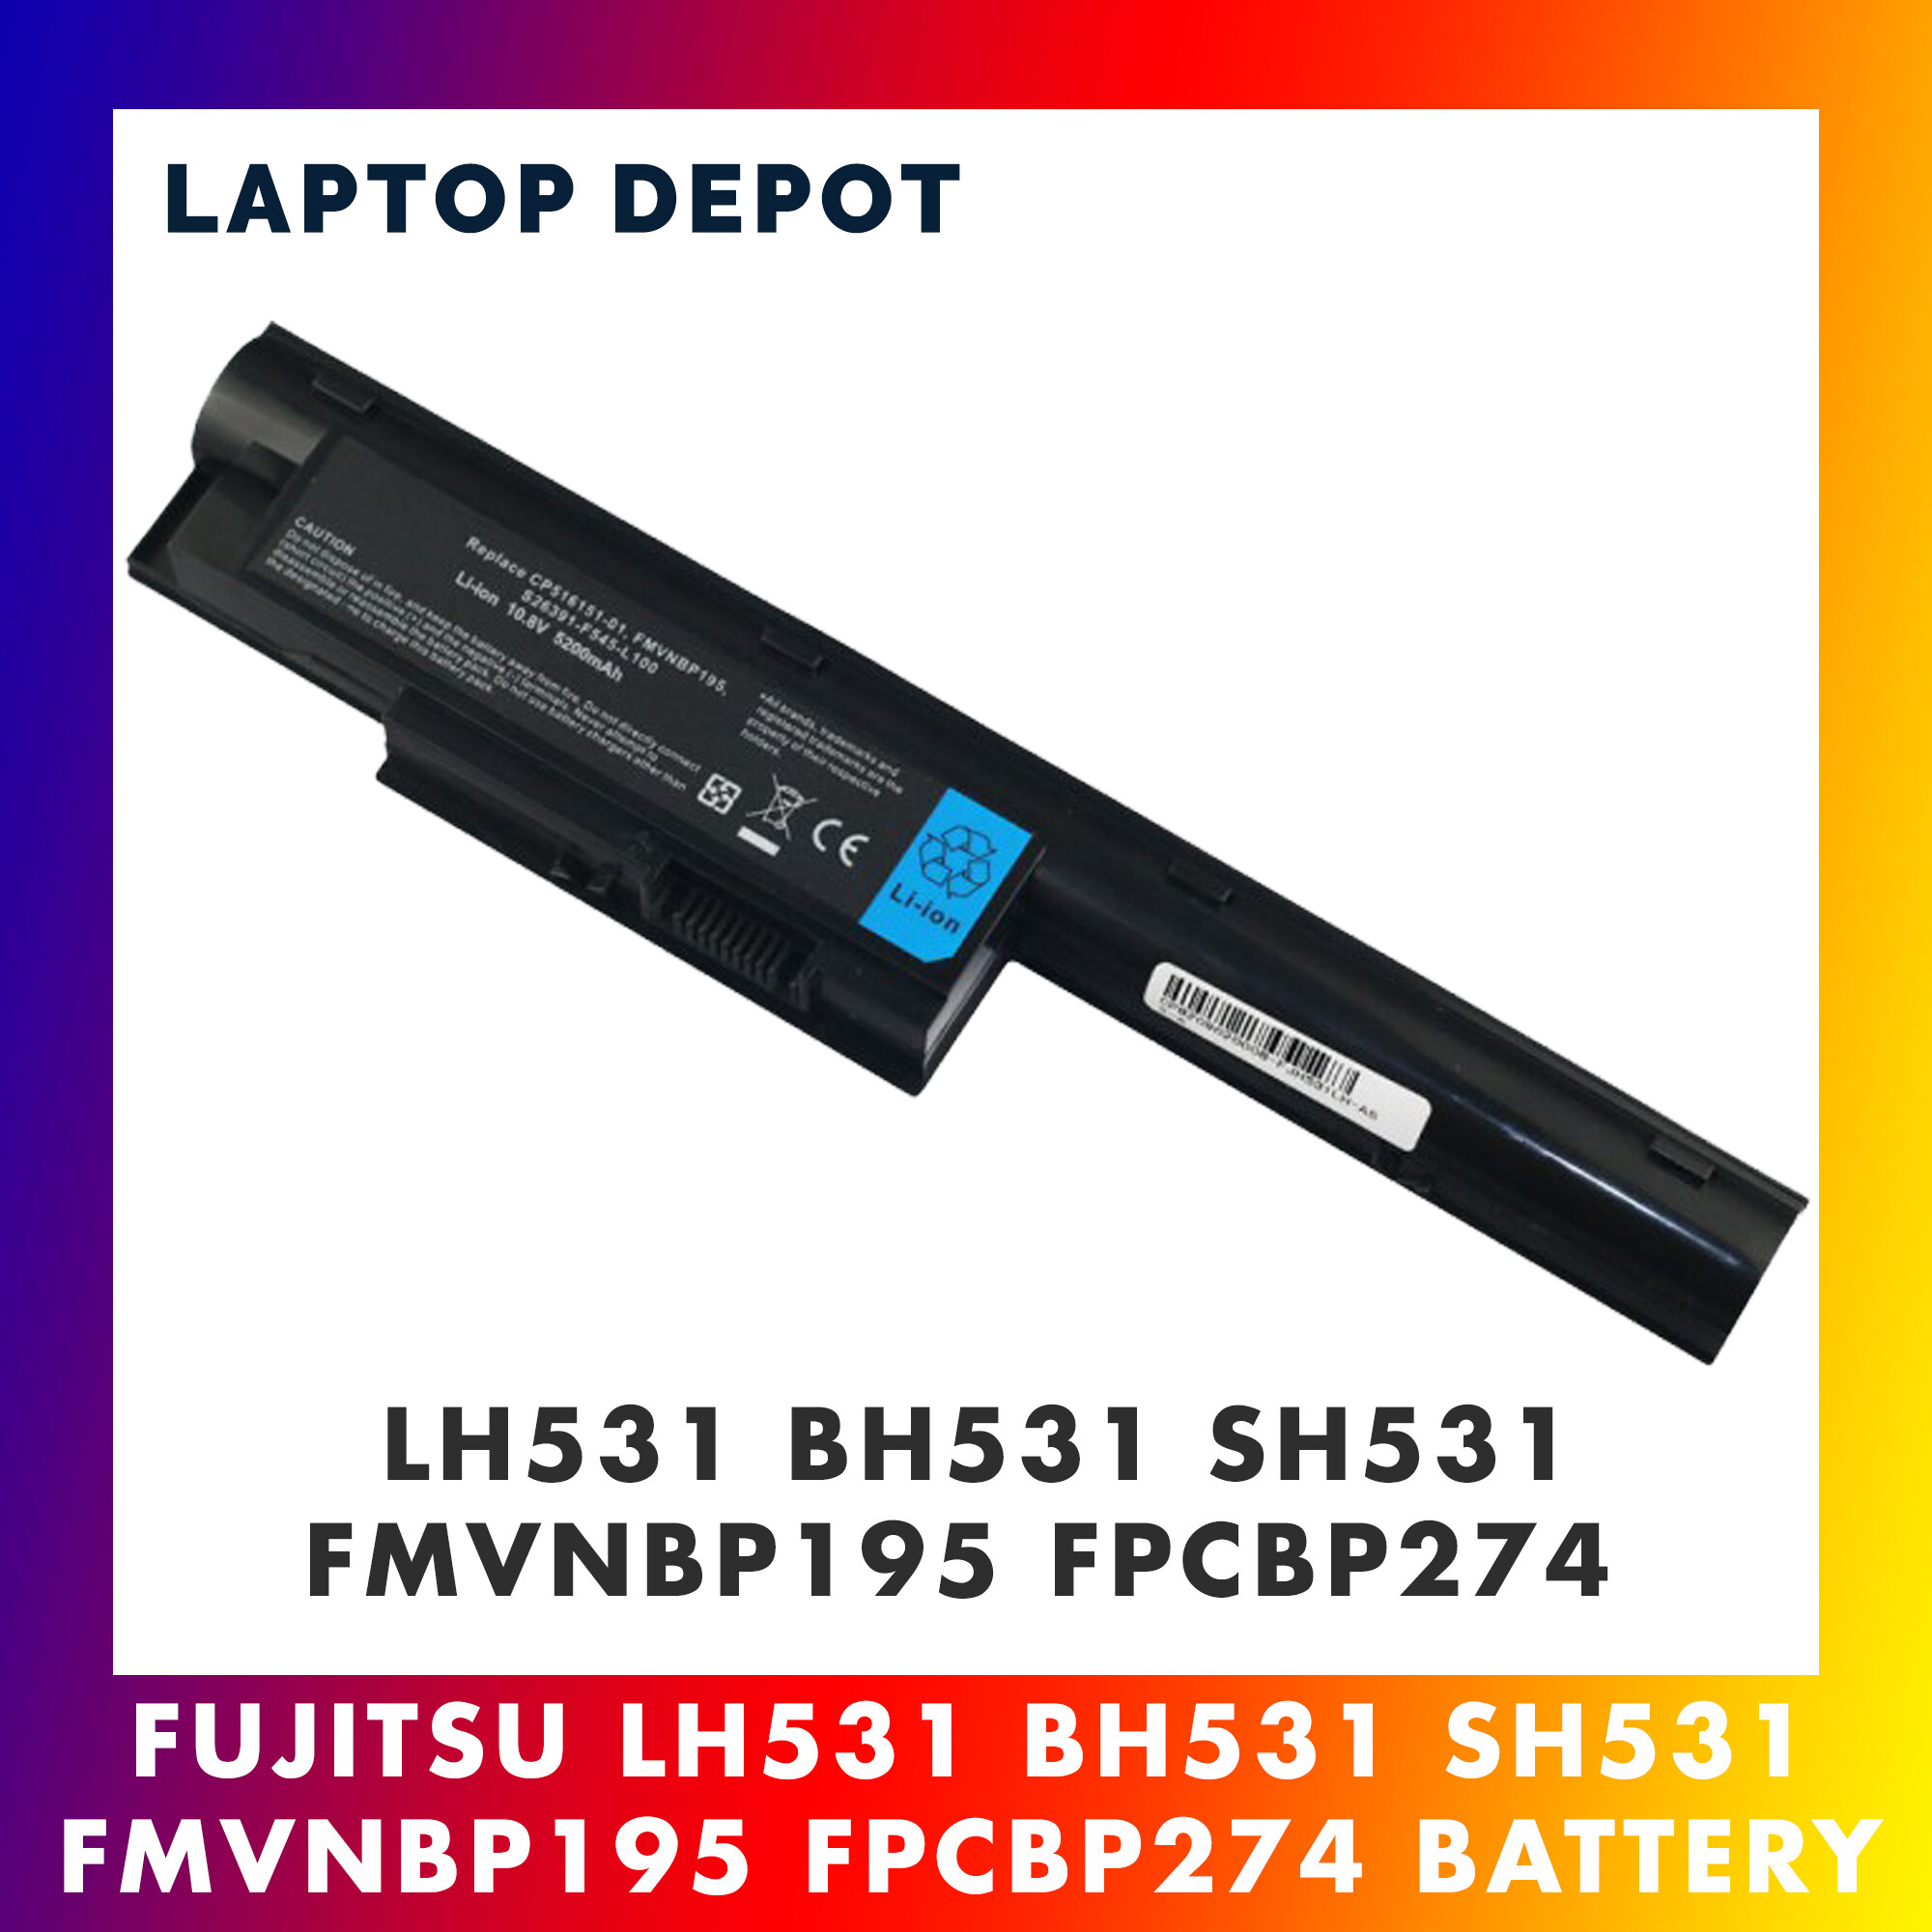 Fujitsu LH531 SH531 BH531 FMVNBP195 FPCBP274 S26391-F545-B100 Replacement Battery Malaysia